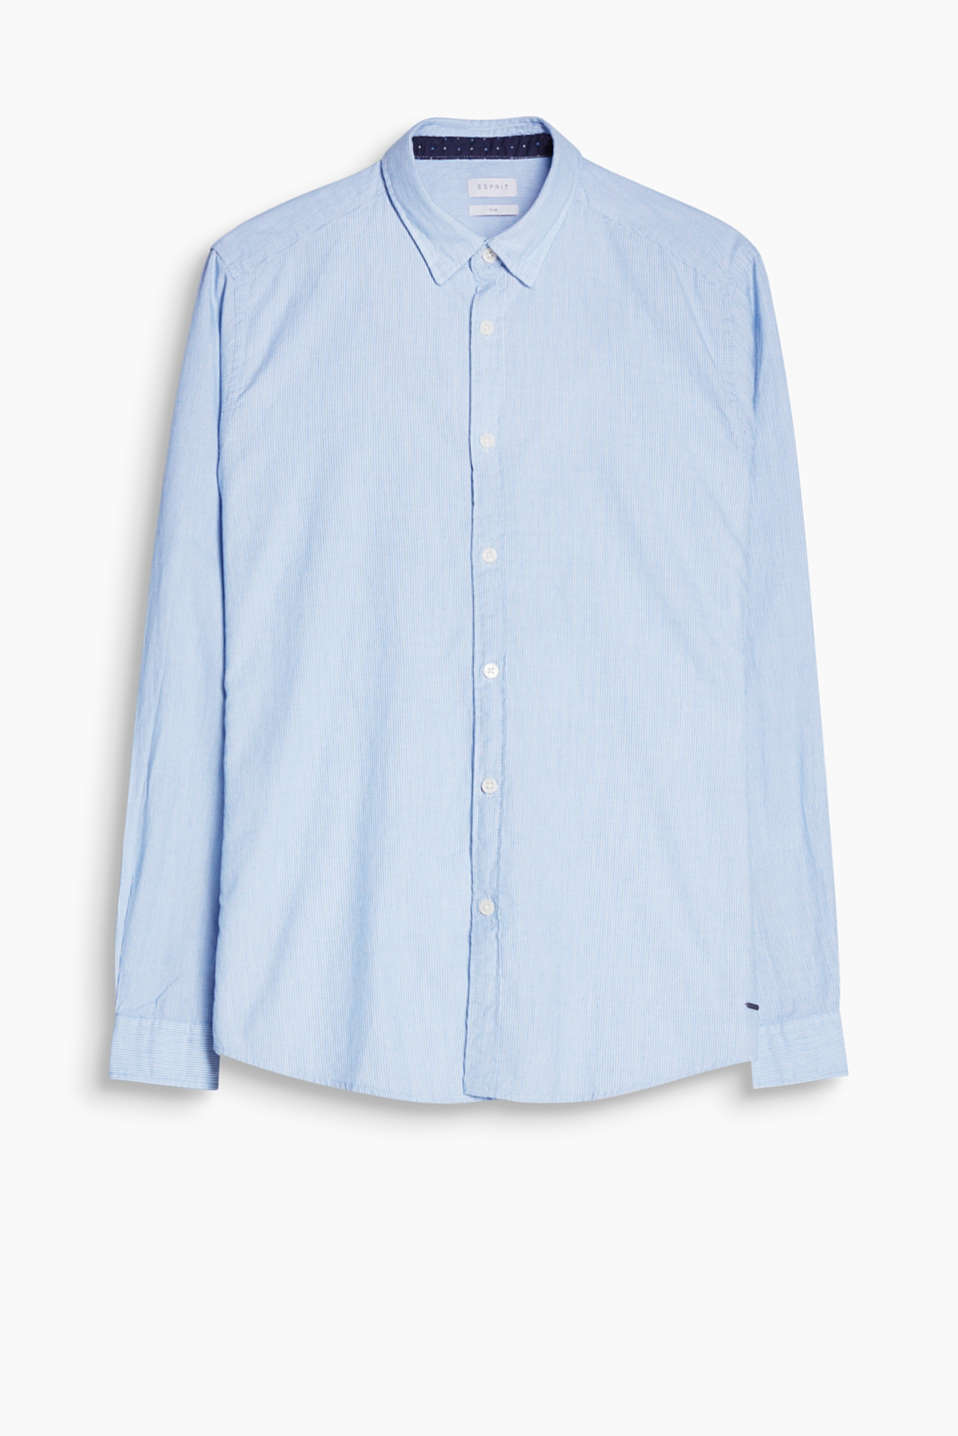 With a concealed button-down collar: finely striped, yarn-dyed shirt in pure cotton